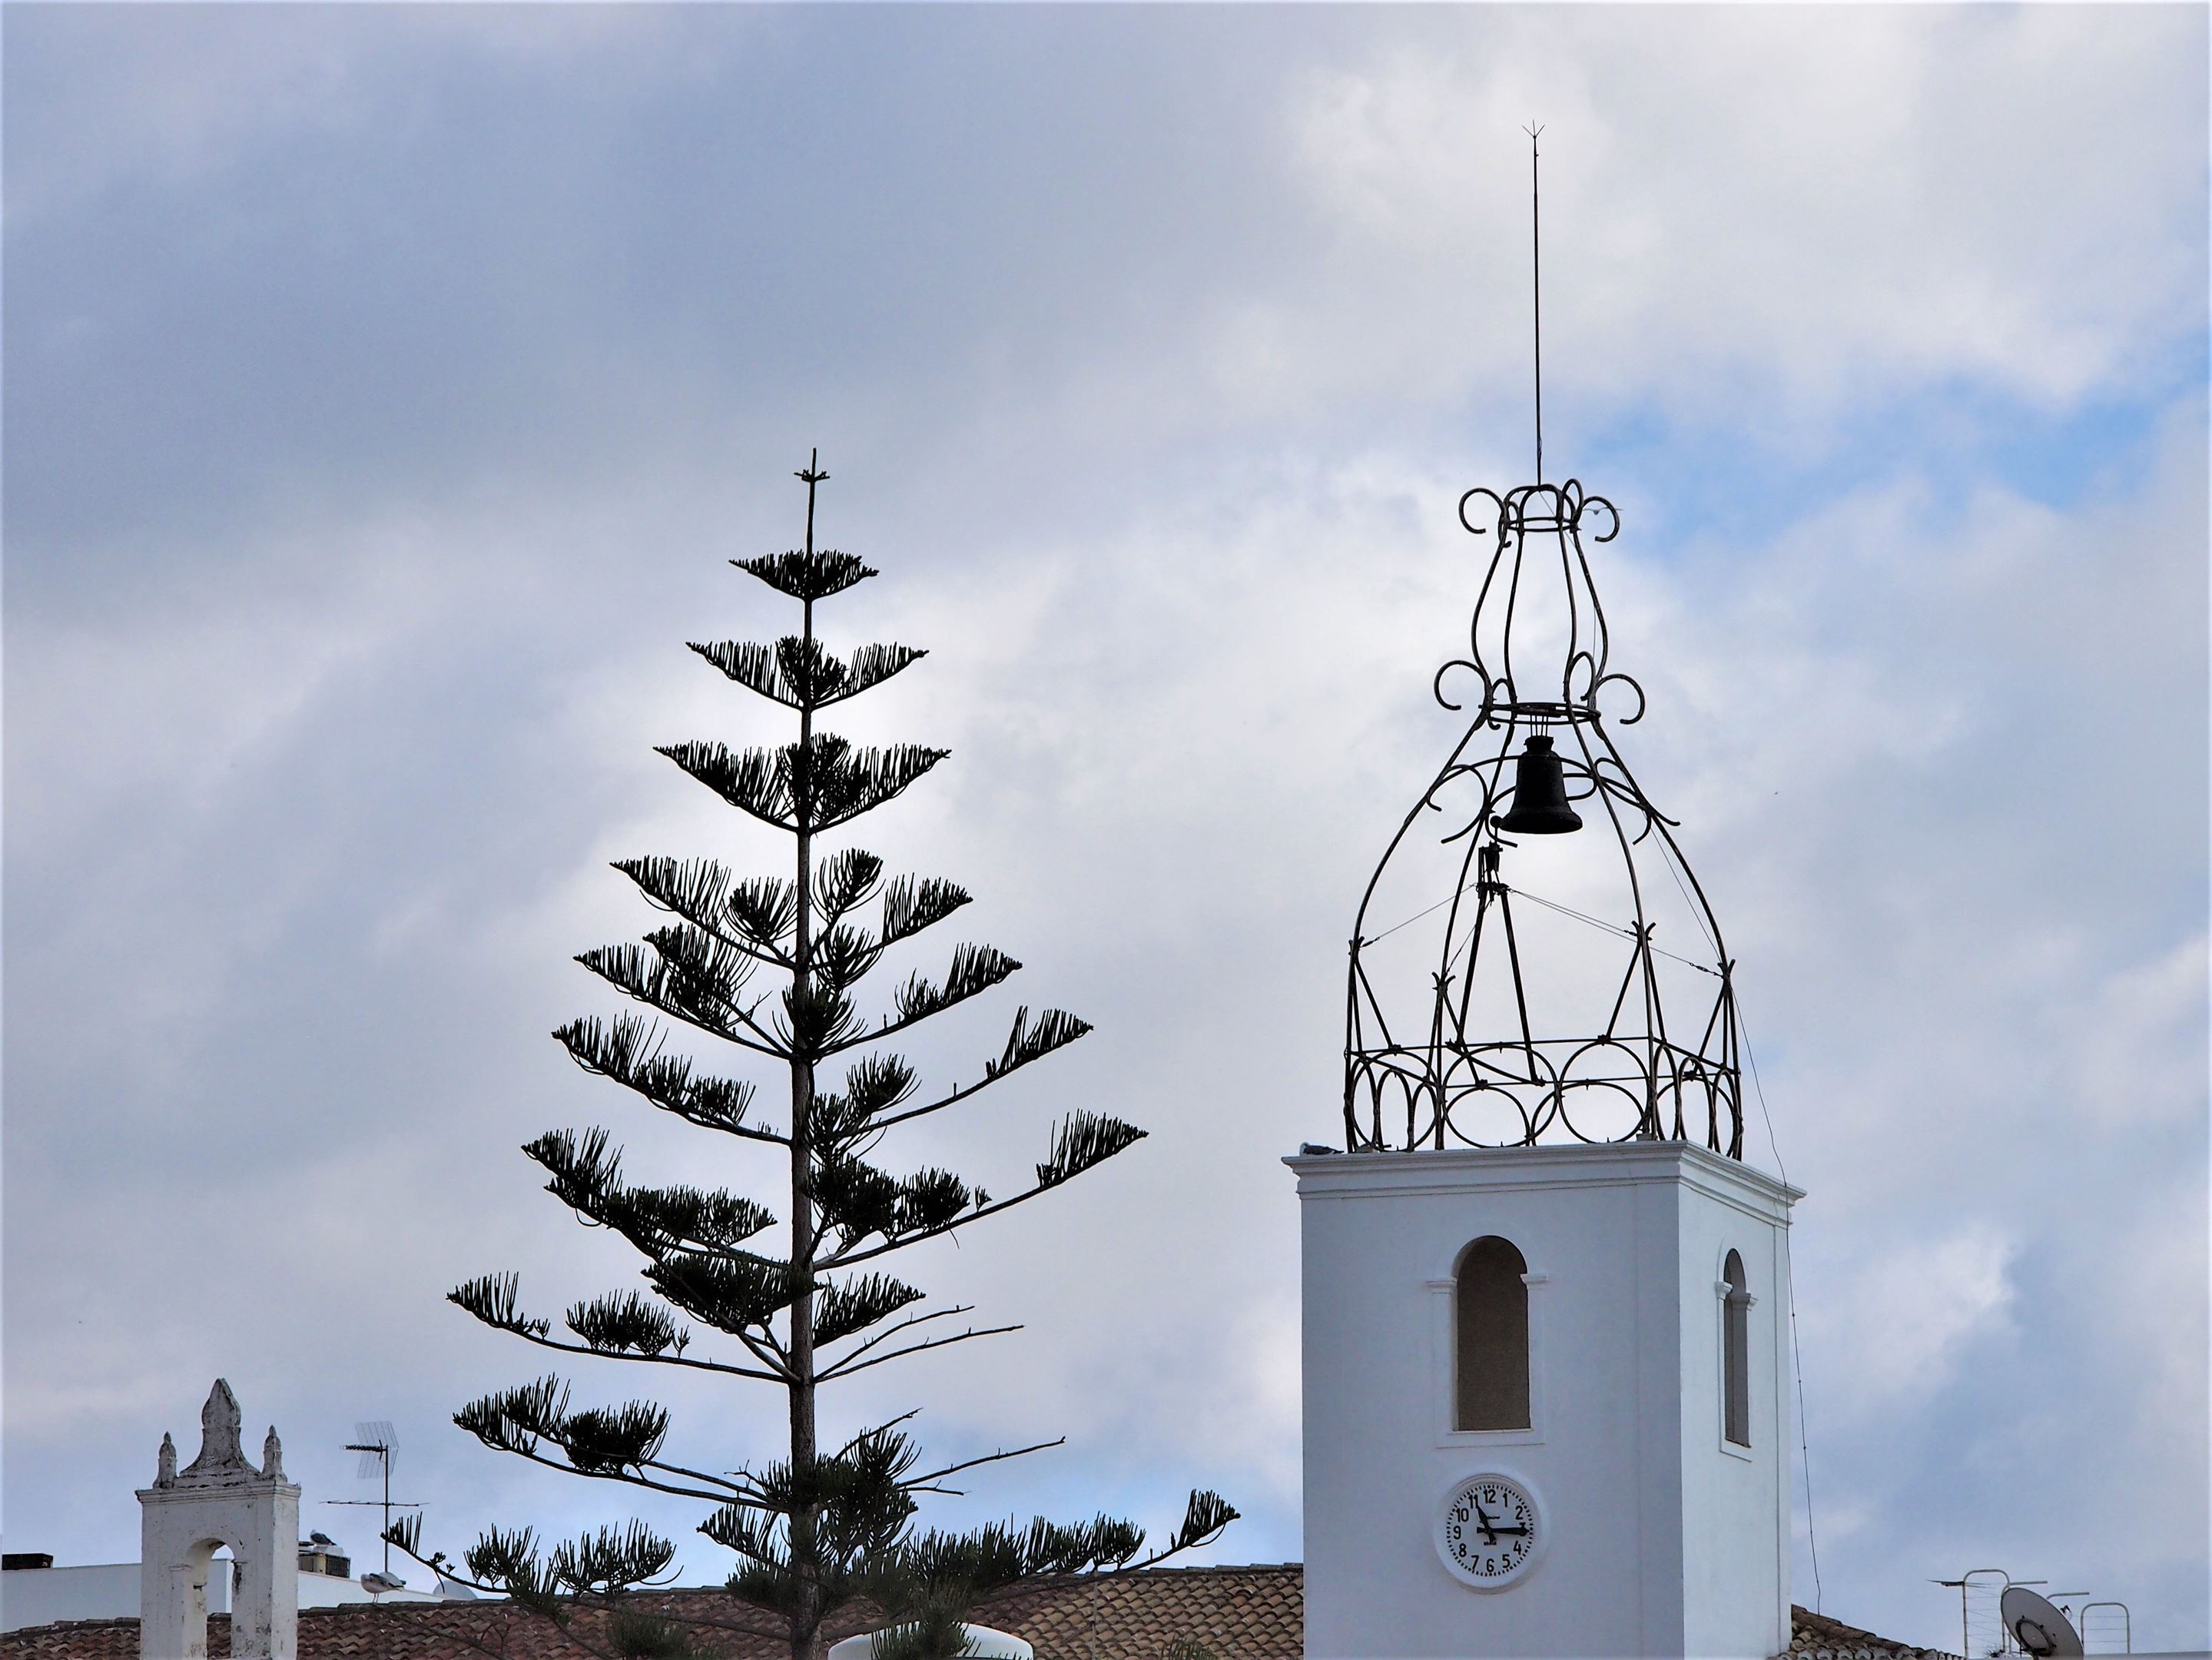 The decorative clocktower of the Archaeological​ ​Museum​, Albufeira